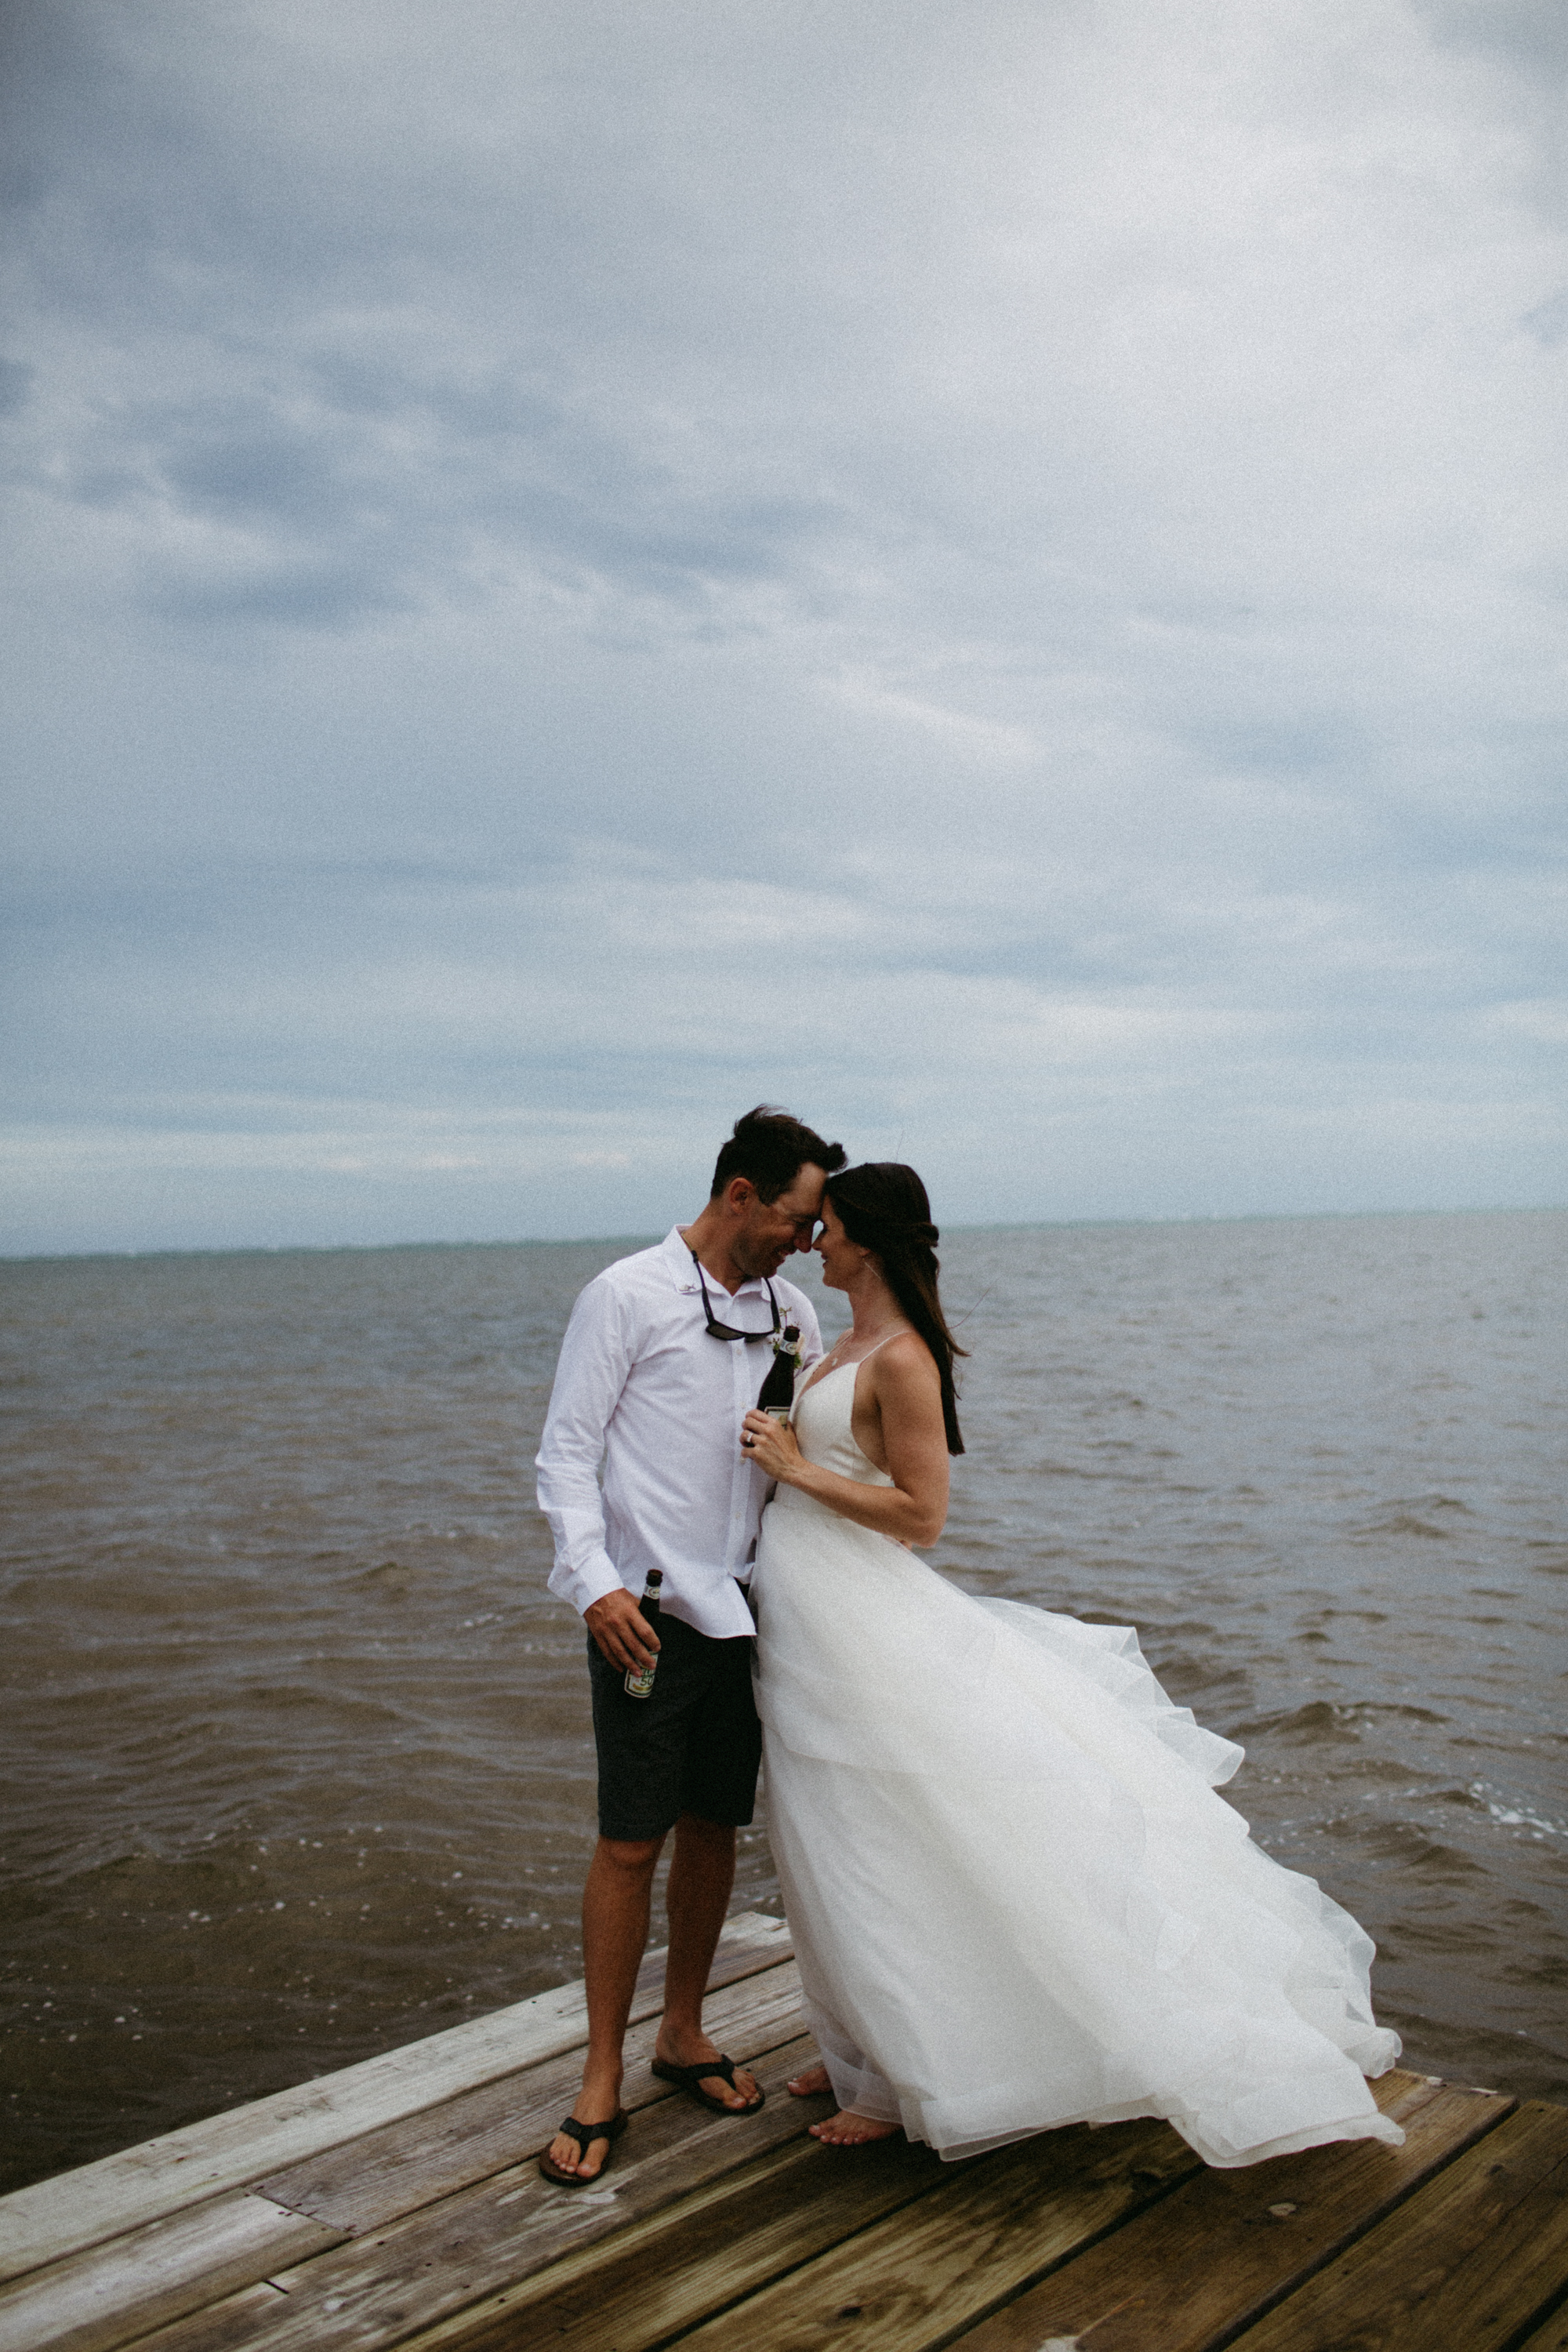 san-pescador-belize-wedding-christinemariephoto-j-k-46.jpg